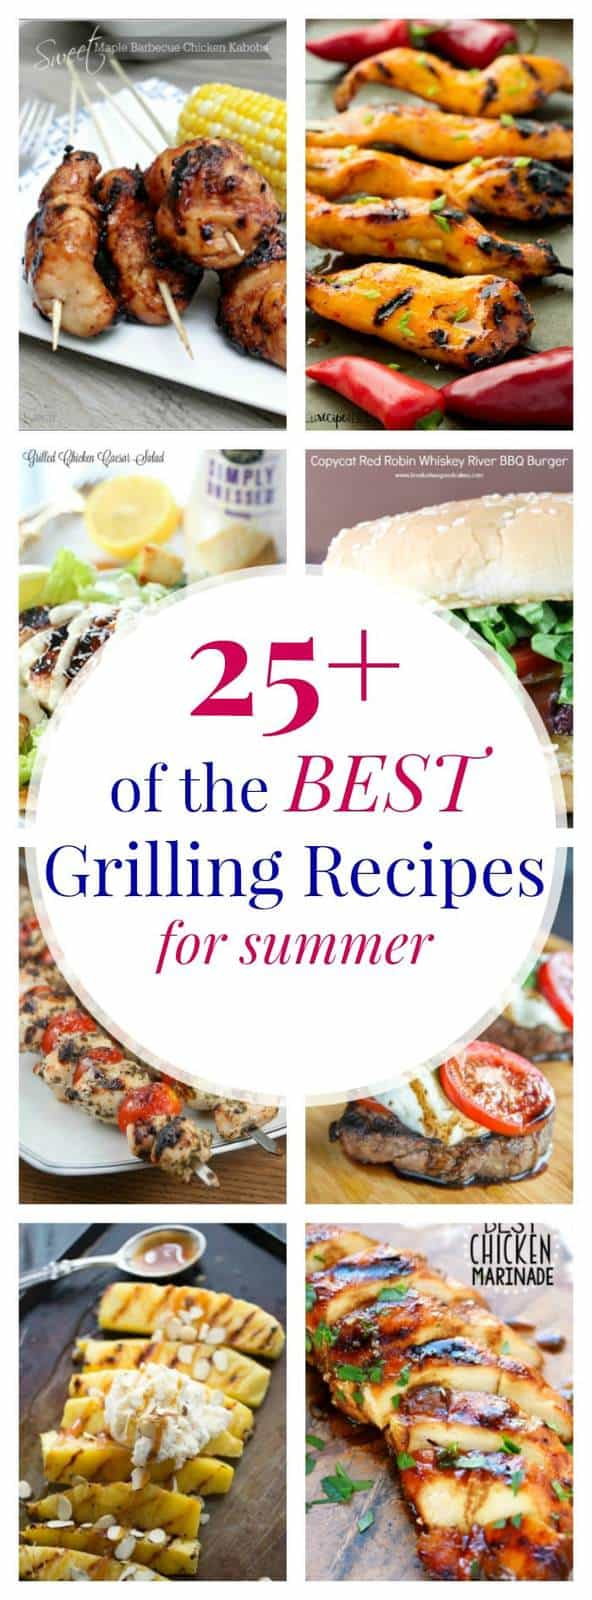 25 of The Best Grilling Recipes for Summer - fire up the grill for chicken, steak, burgers, fruit, veggies, even dessert! | cupcakesandkalechips.com